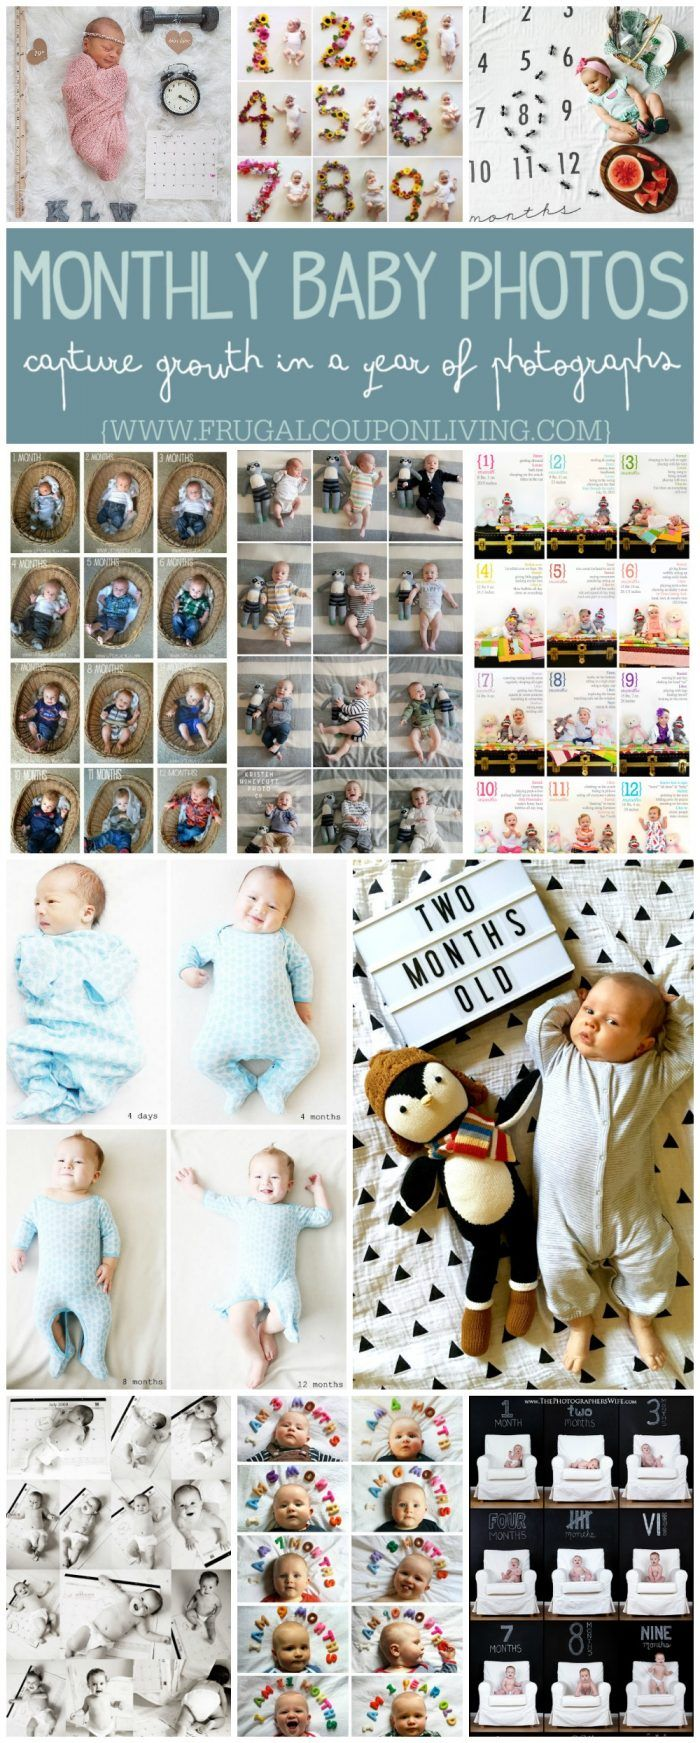 Monthly Baby Photo Ideas Track Your Baby S Age In Photos Best Of Frugal Coupon Living Monthly Baby Photos Baby Month By Month Baby Photos